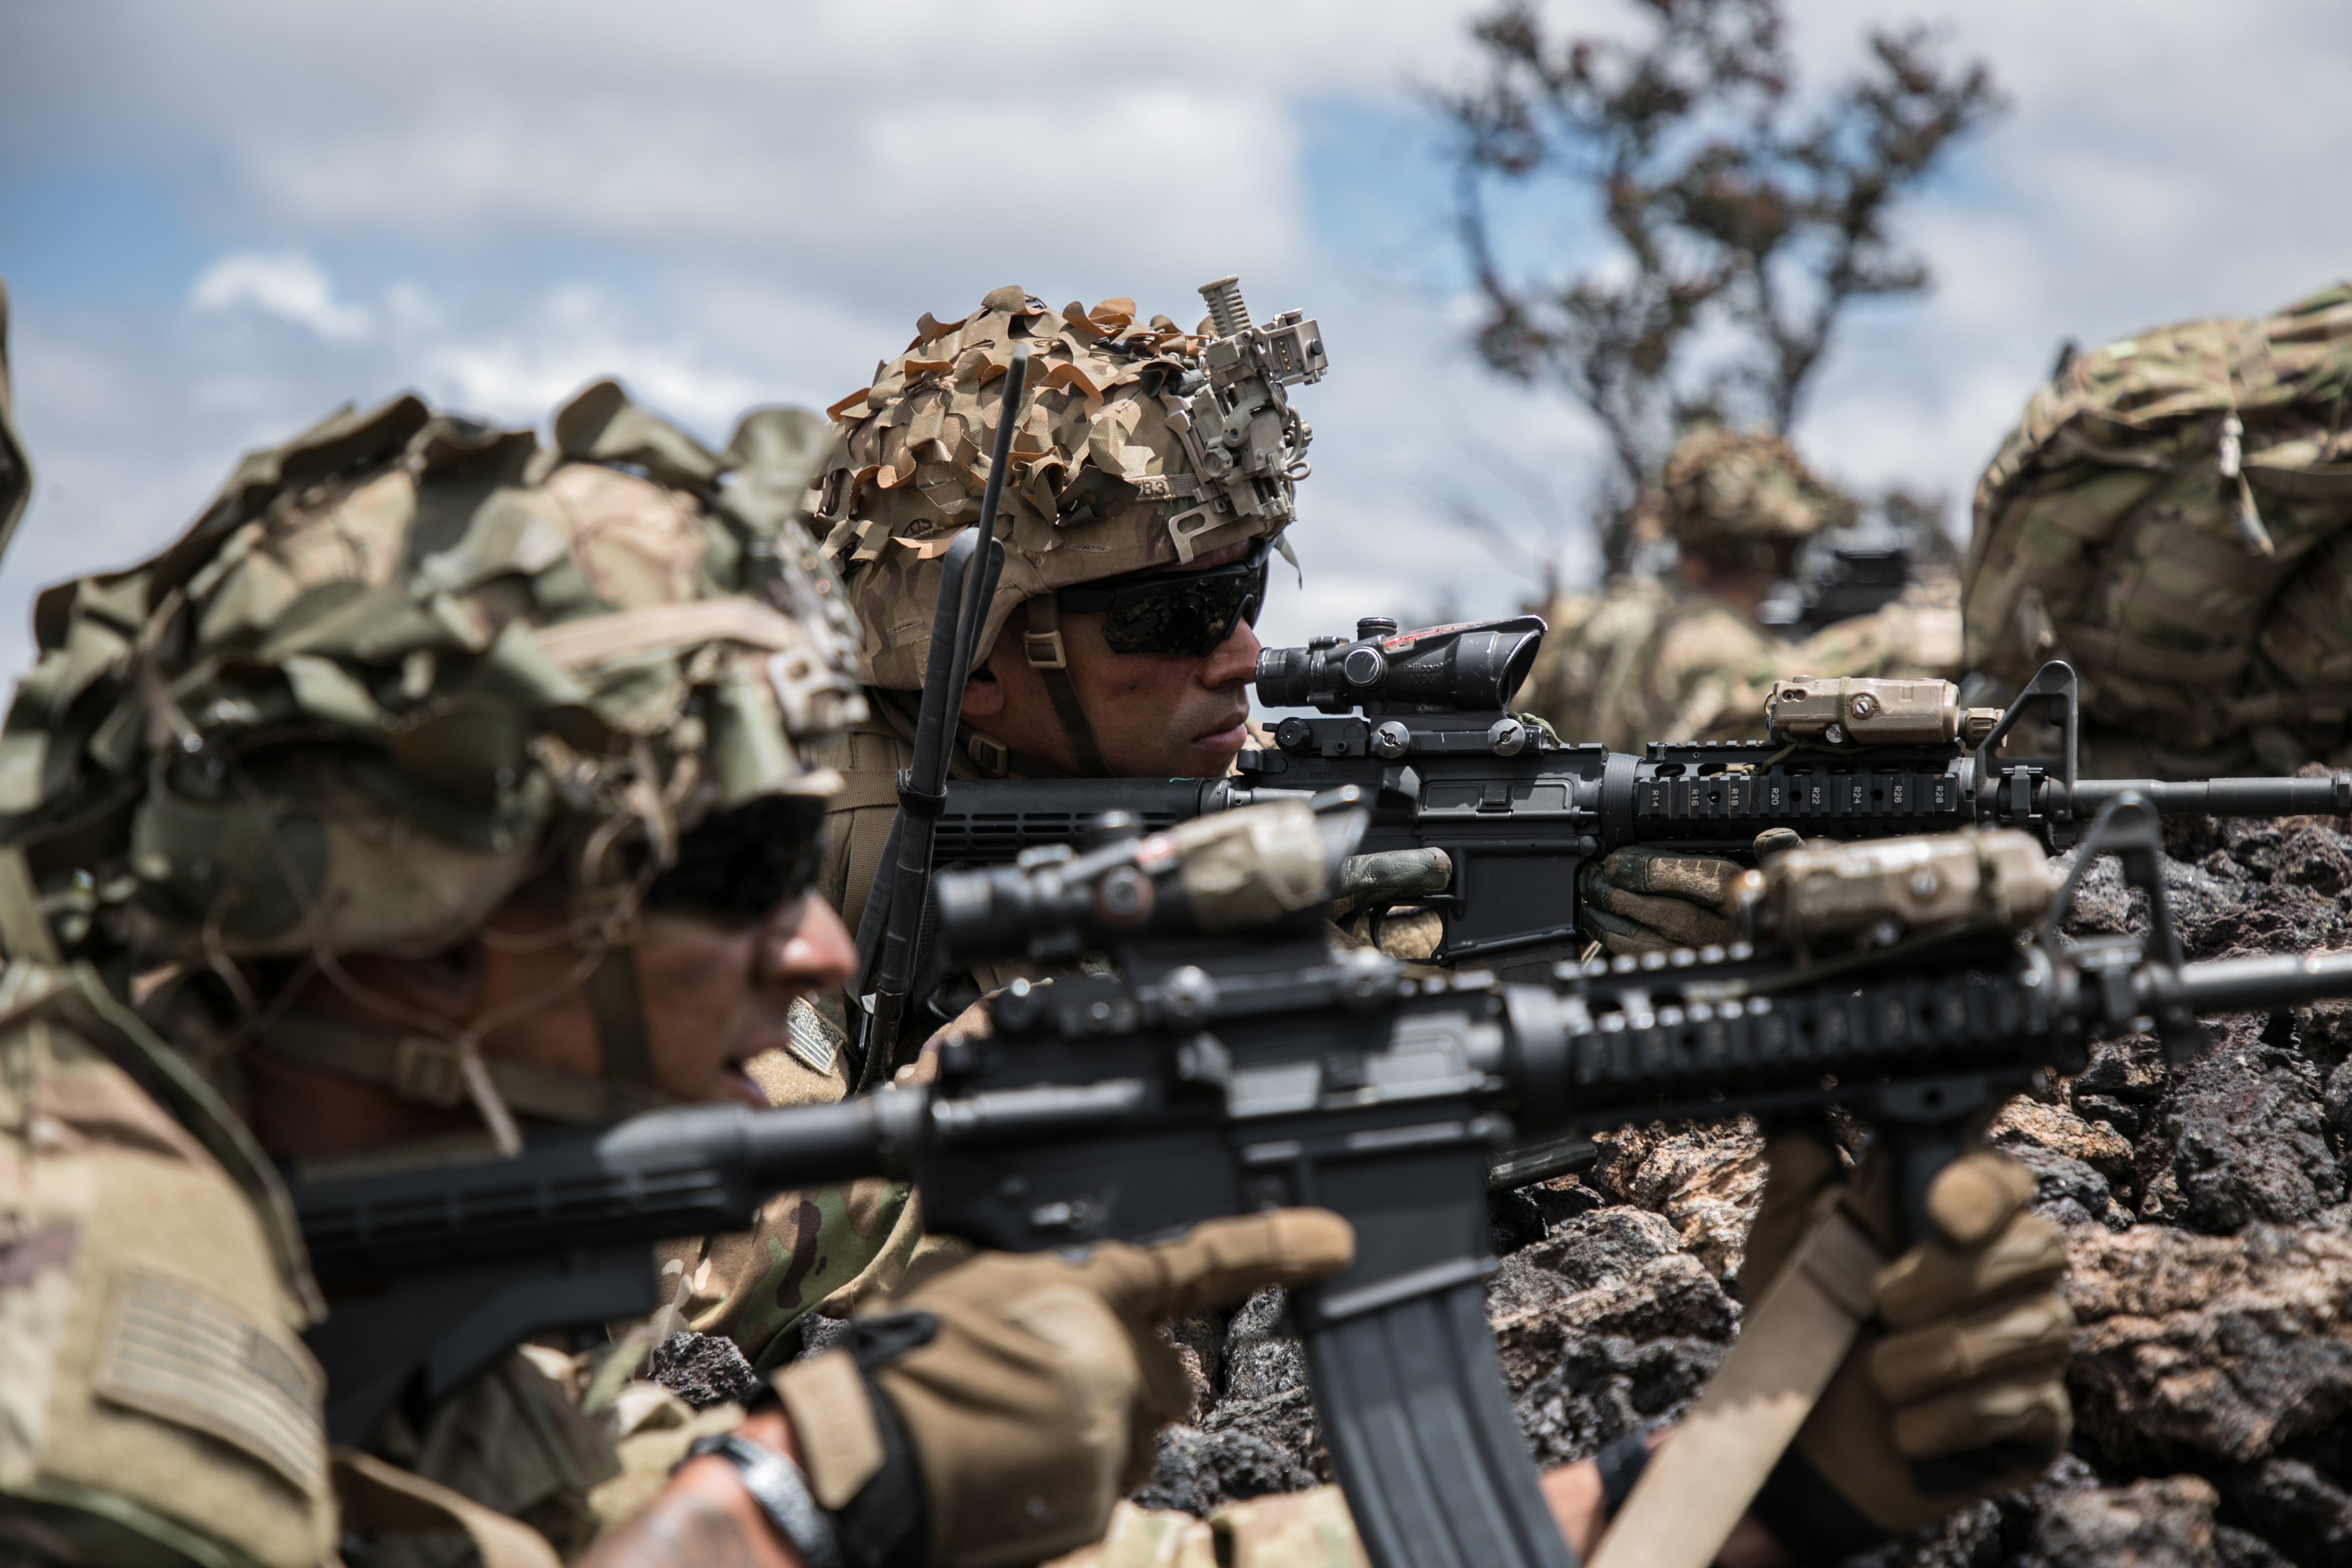 Troopers assigned to 2nd Squadron, 14th Calvary Regiment, 2nd Infantry Brigade Combat Team, 25th Infantry Division provide security during a combined arms live-fire exercise at Pohakuloa Training Area, Hawaii, May 15, 2018. (1st Lt. Ryan DeBooy/Army)